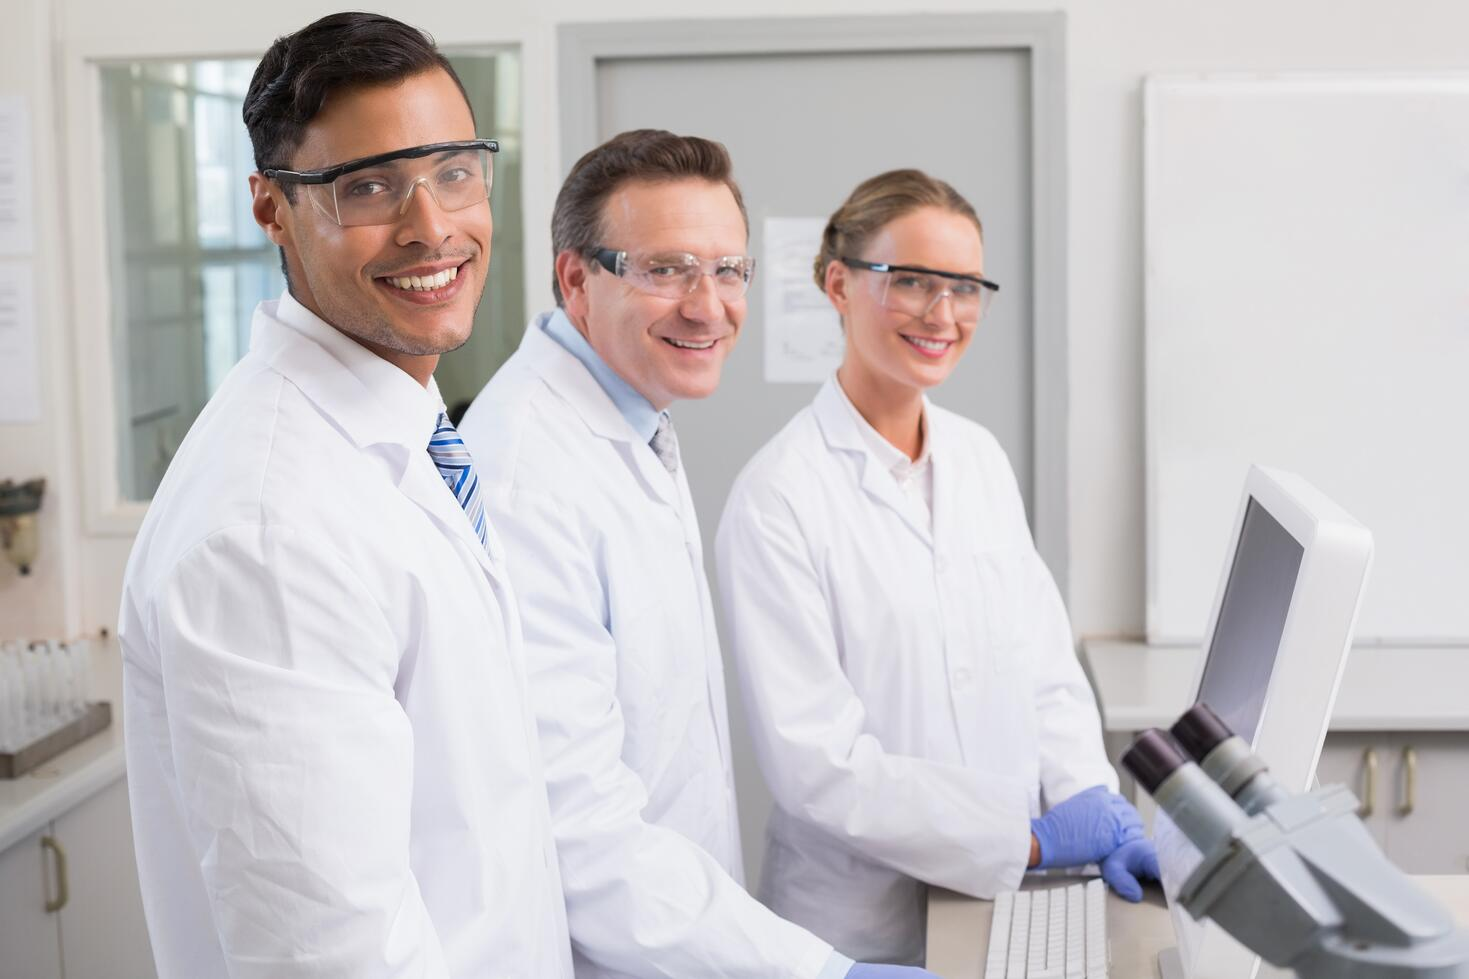 Scientists-Smiling-Laboratory-Clinical-Research.jpg